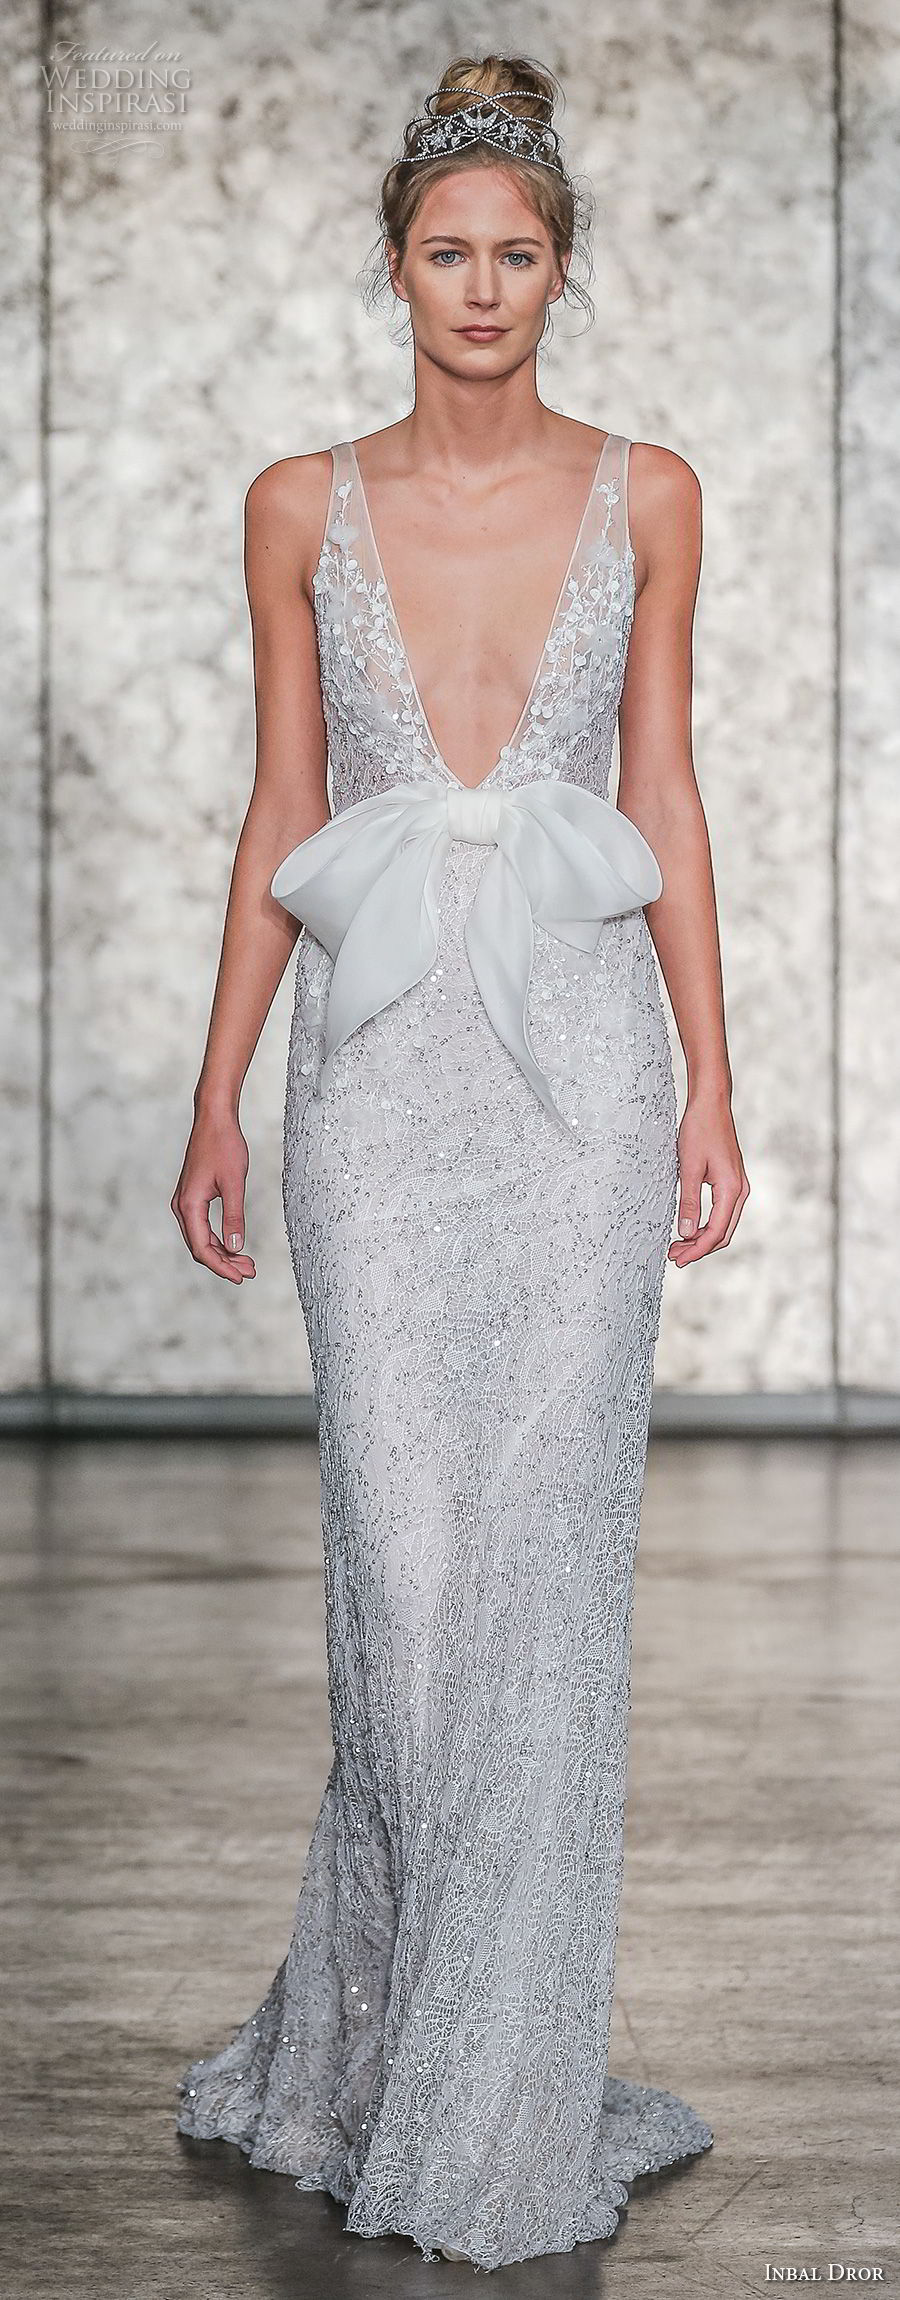 inbal dror fall 2018 bridal sleeveless deep v neck full embellishment elegant sheath wedding dress open v back sweep train (08) mv